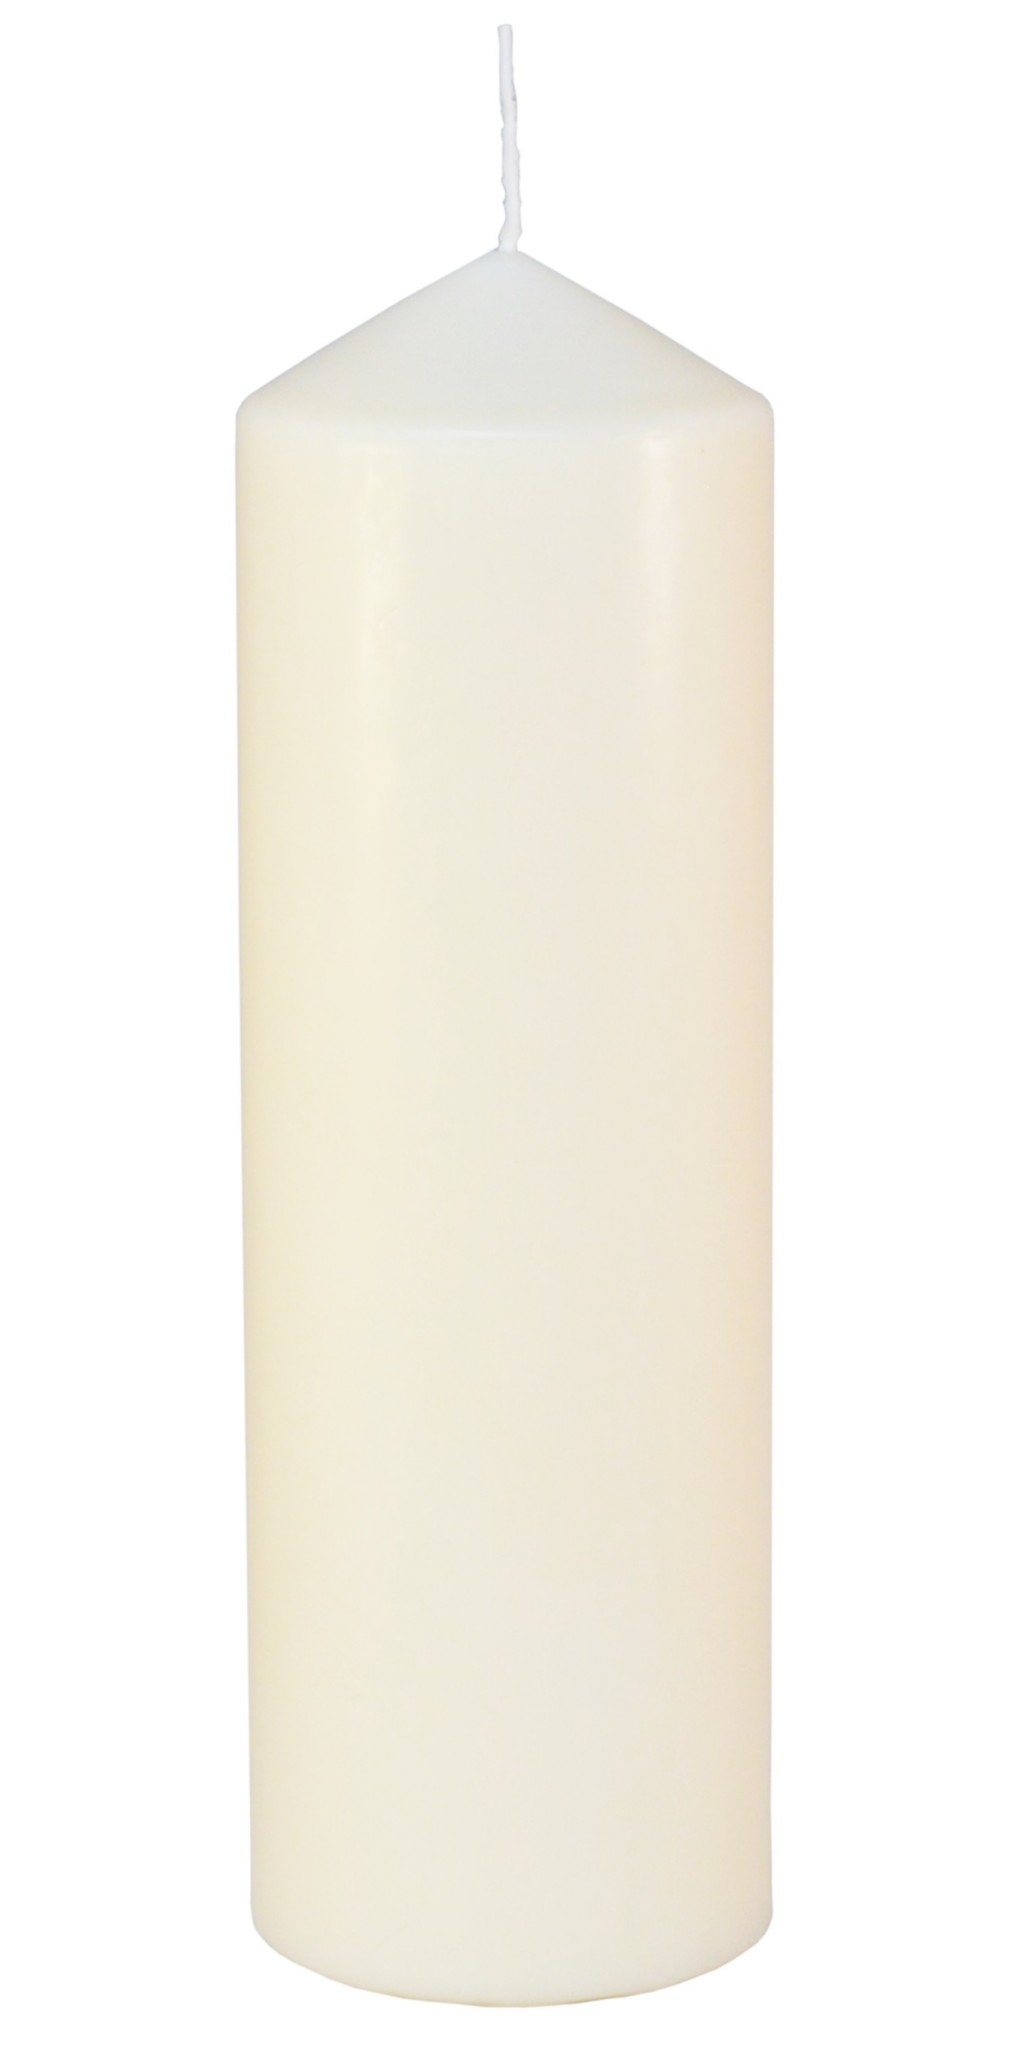 all-candles-wholesale